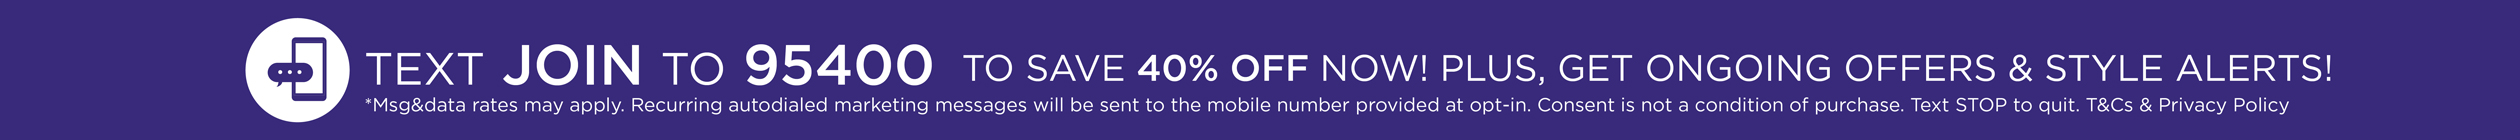 text JOIN to 95400 for exclusive access to speical offers, new arrivals and more. *msg&data rates may apply. Recurring autodialed marketing messages will be sent to the mobile number provided at opt-in. Consent is not a condition of purchase. Text STOP to quit.